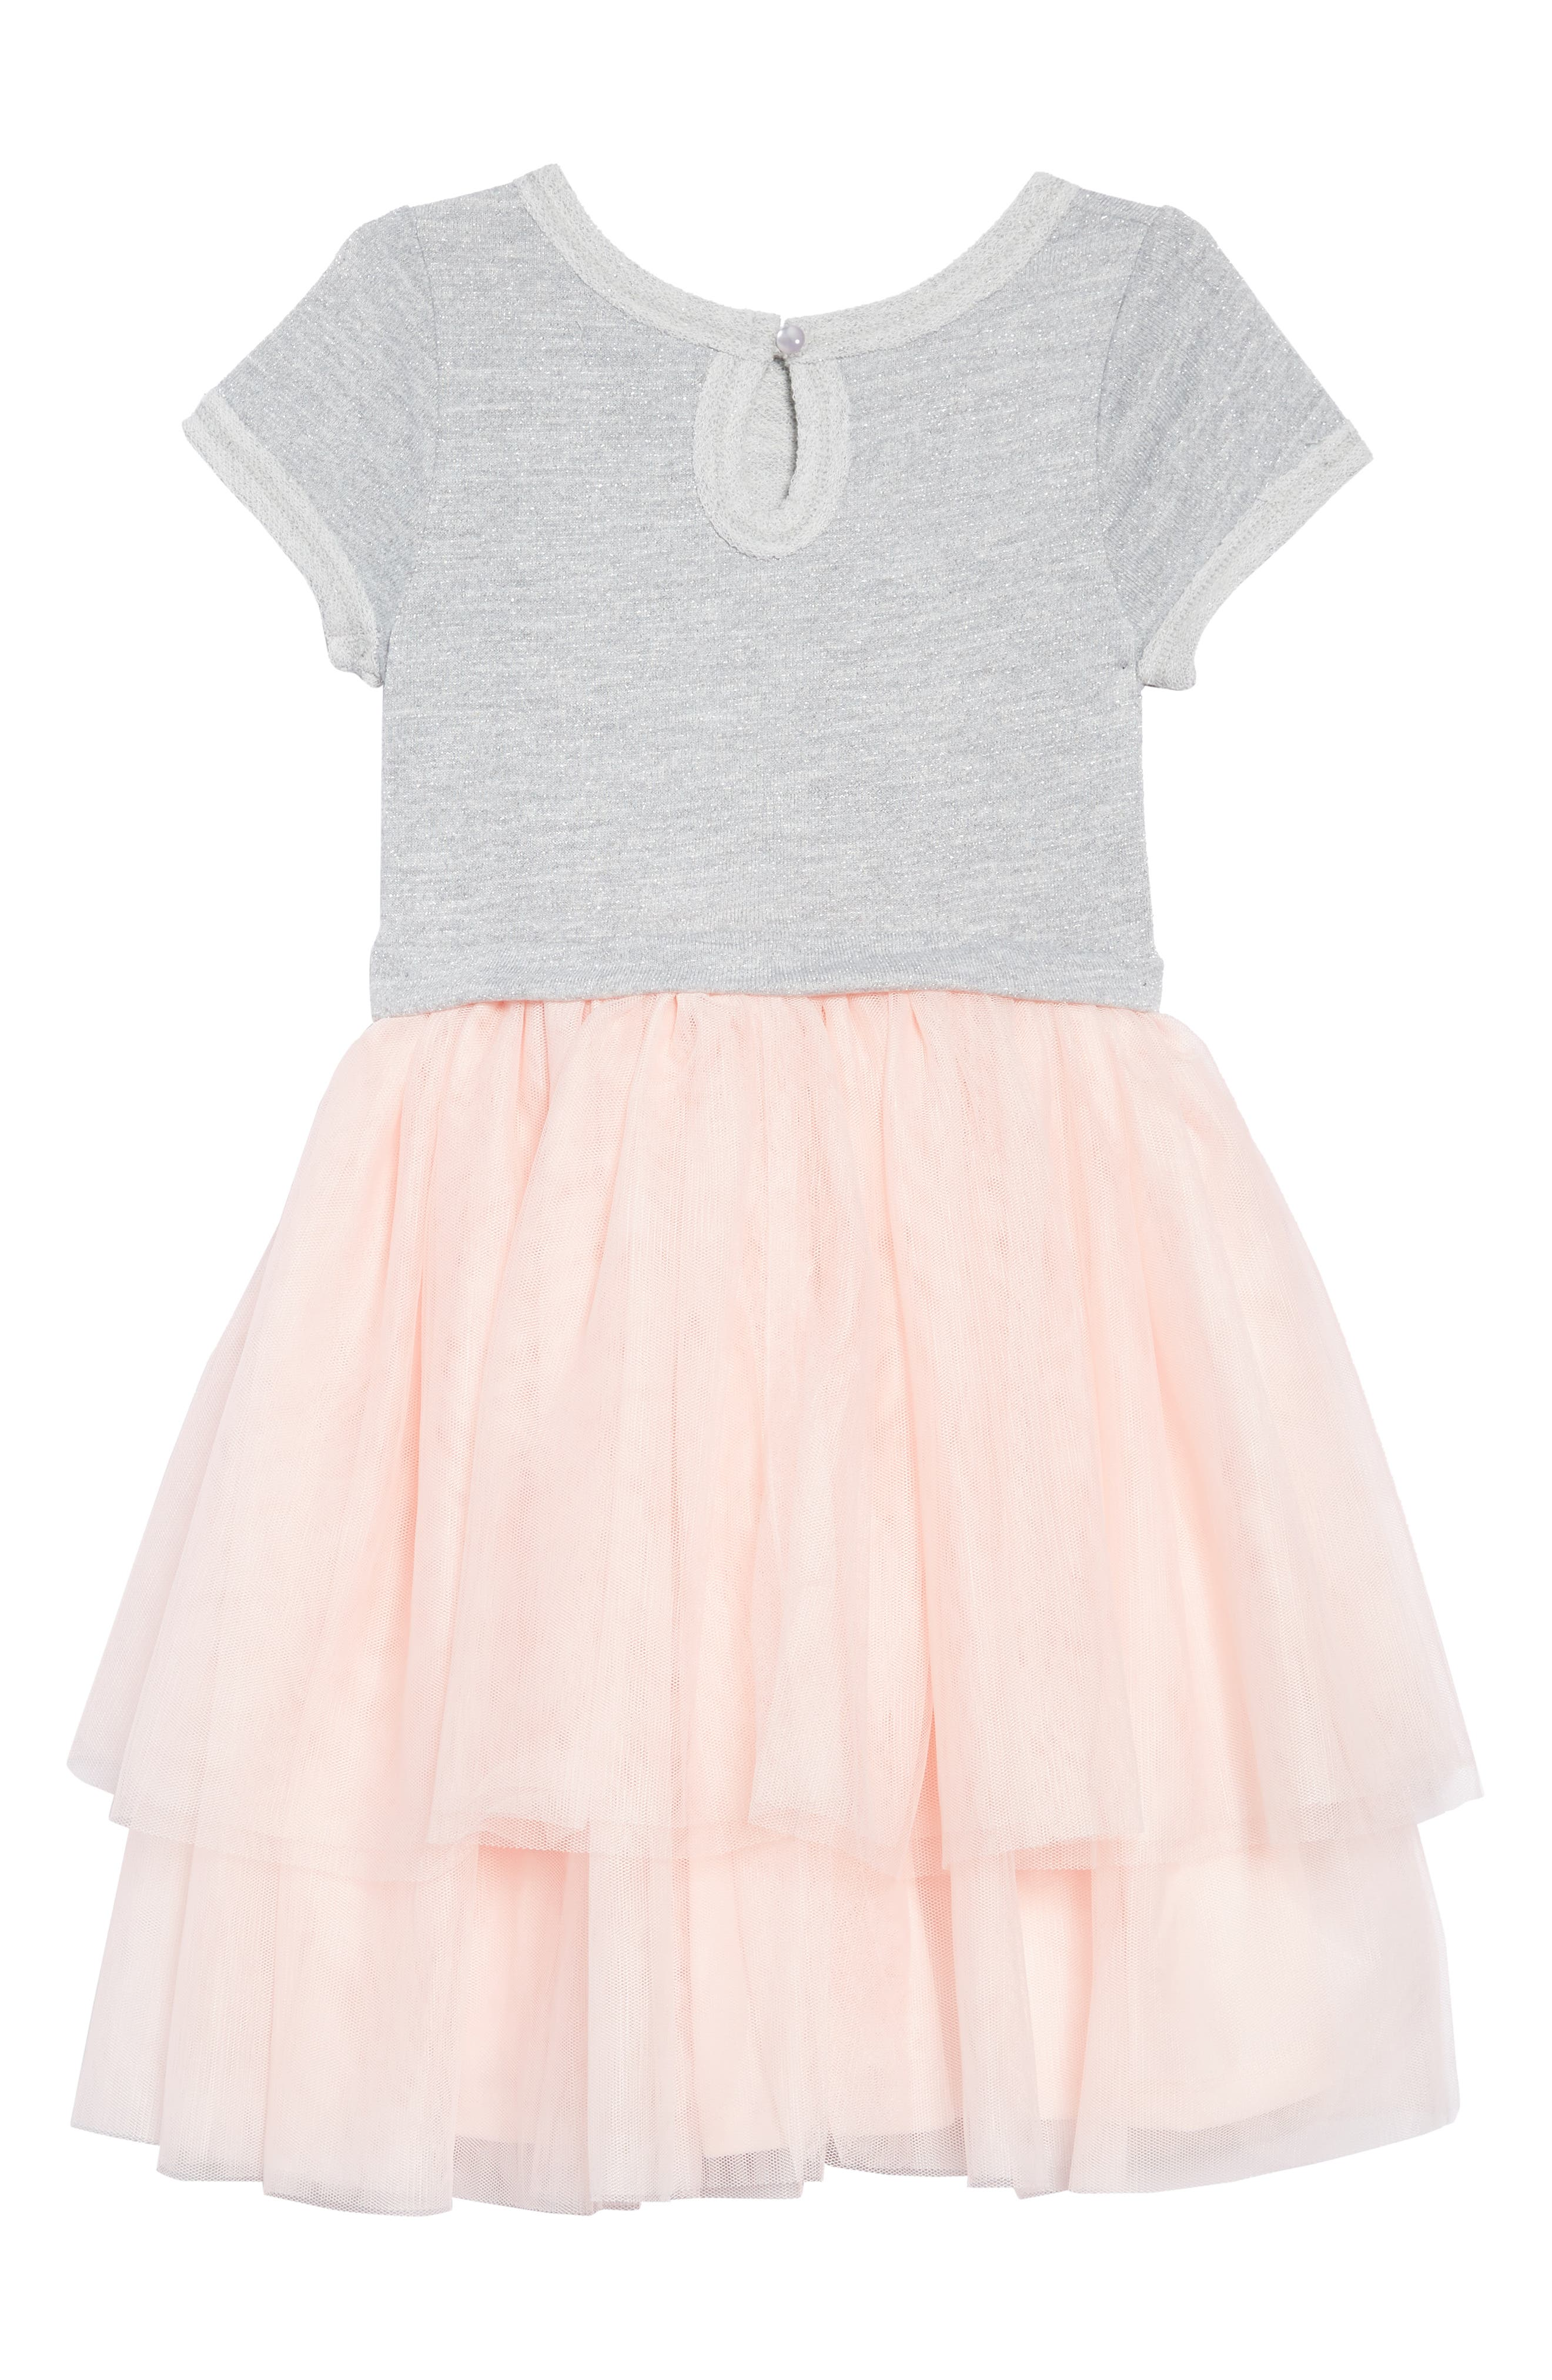 Tiered Tutu Dress,                             Alternate thumbnail 2, color,                             PINK